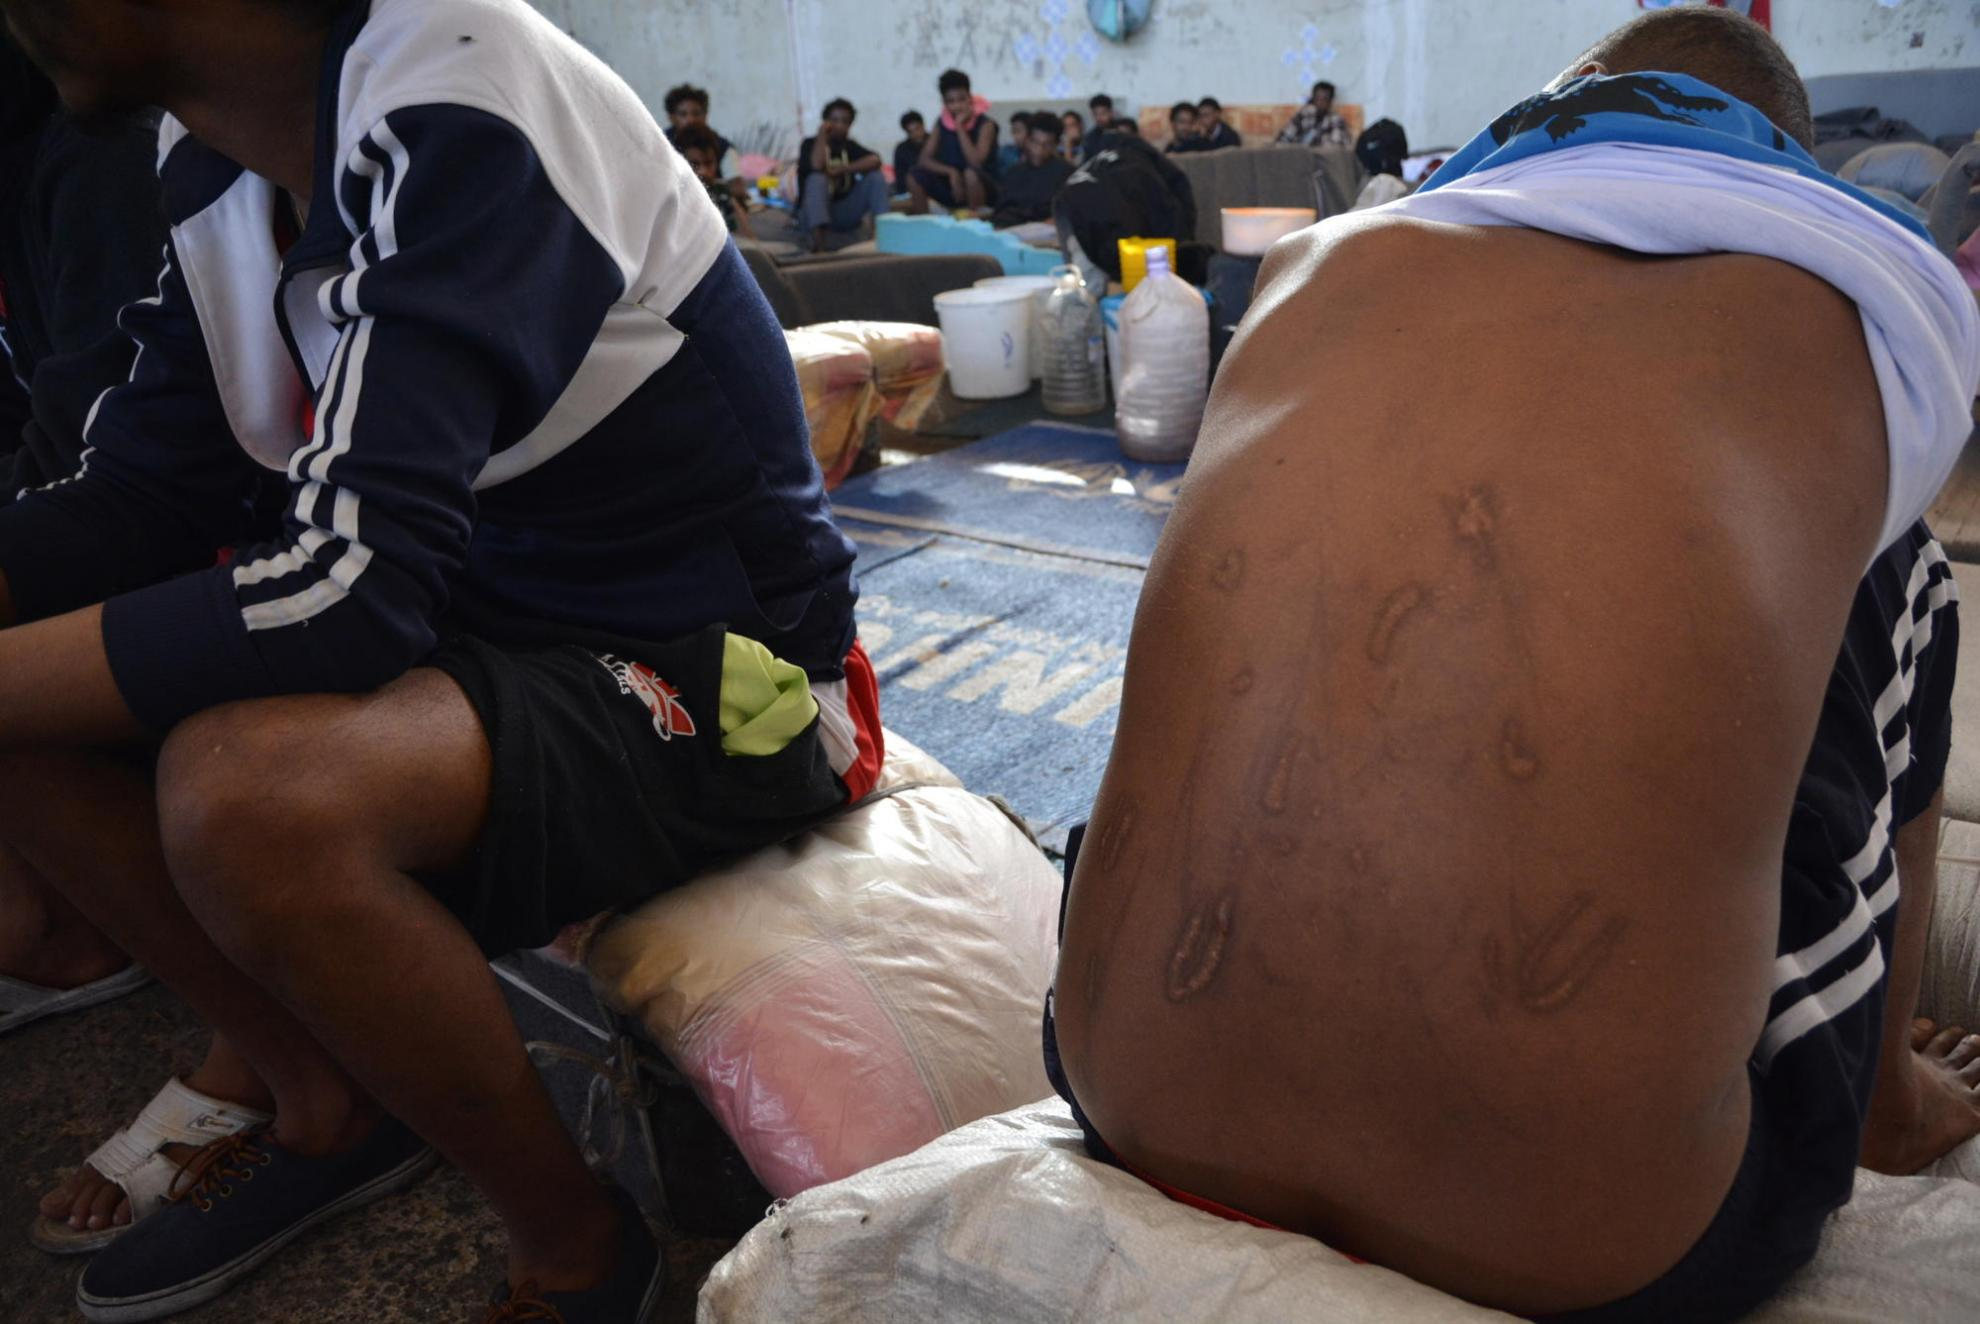 A man held in a Libyan detention centre shows scars from wounds inflicted by traffickers